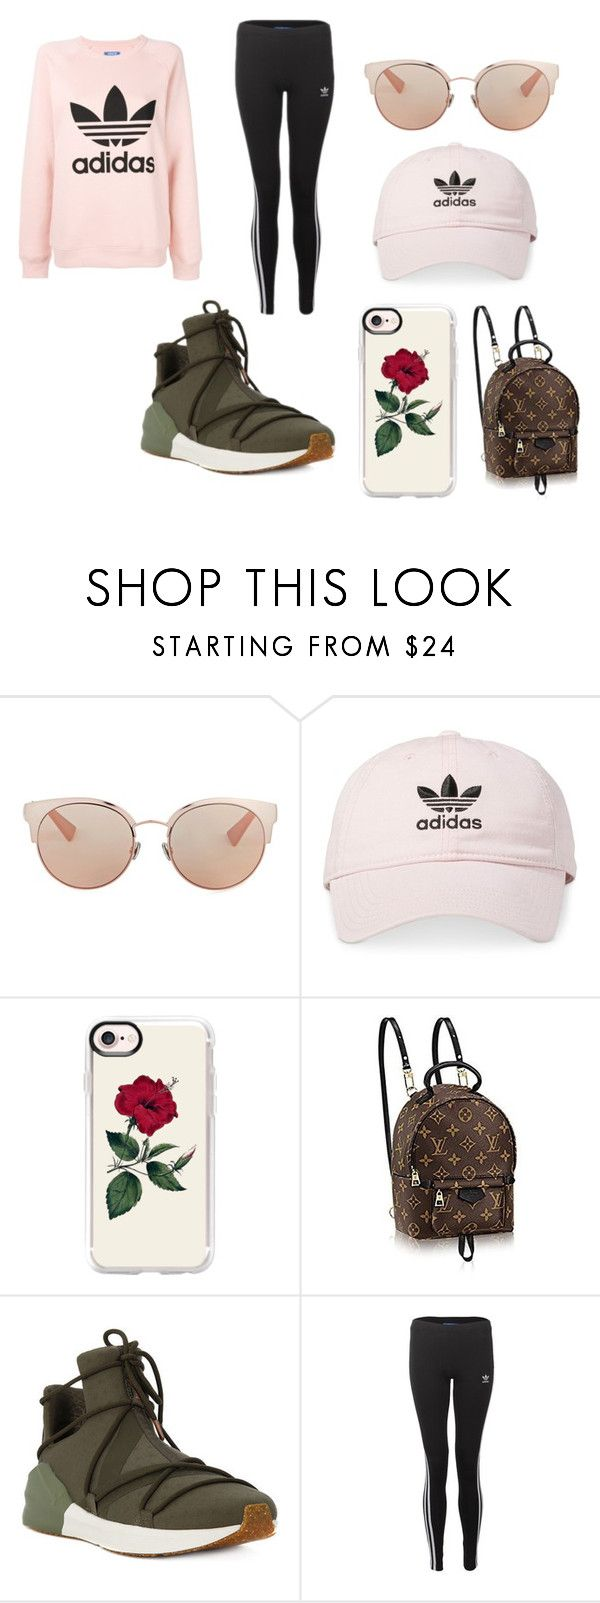 c221a8ba4bbc Casual Annie LeBlanc by tomboy45 on Polyvore featuring Christian Dior